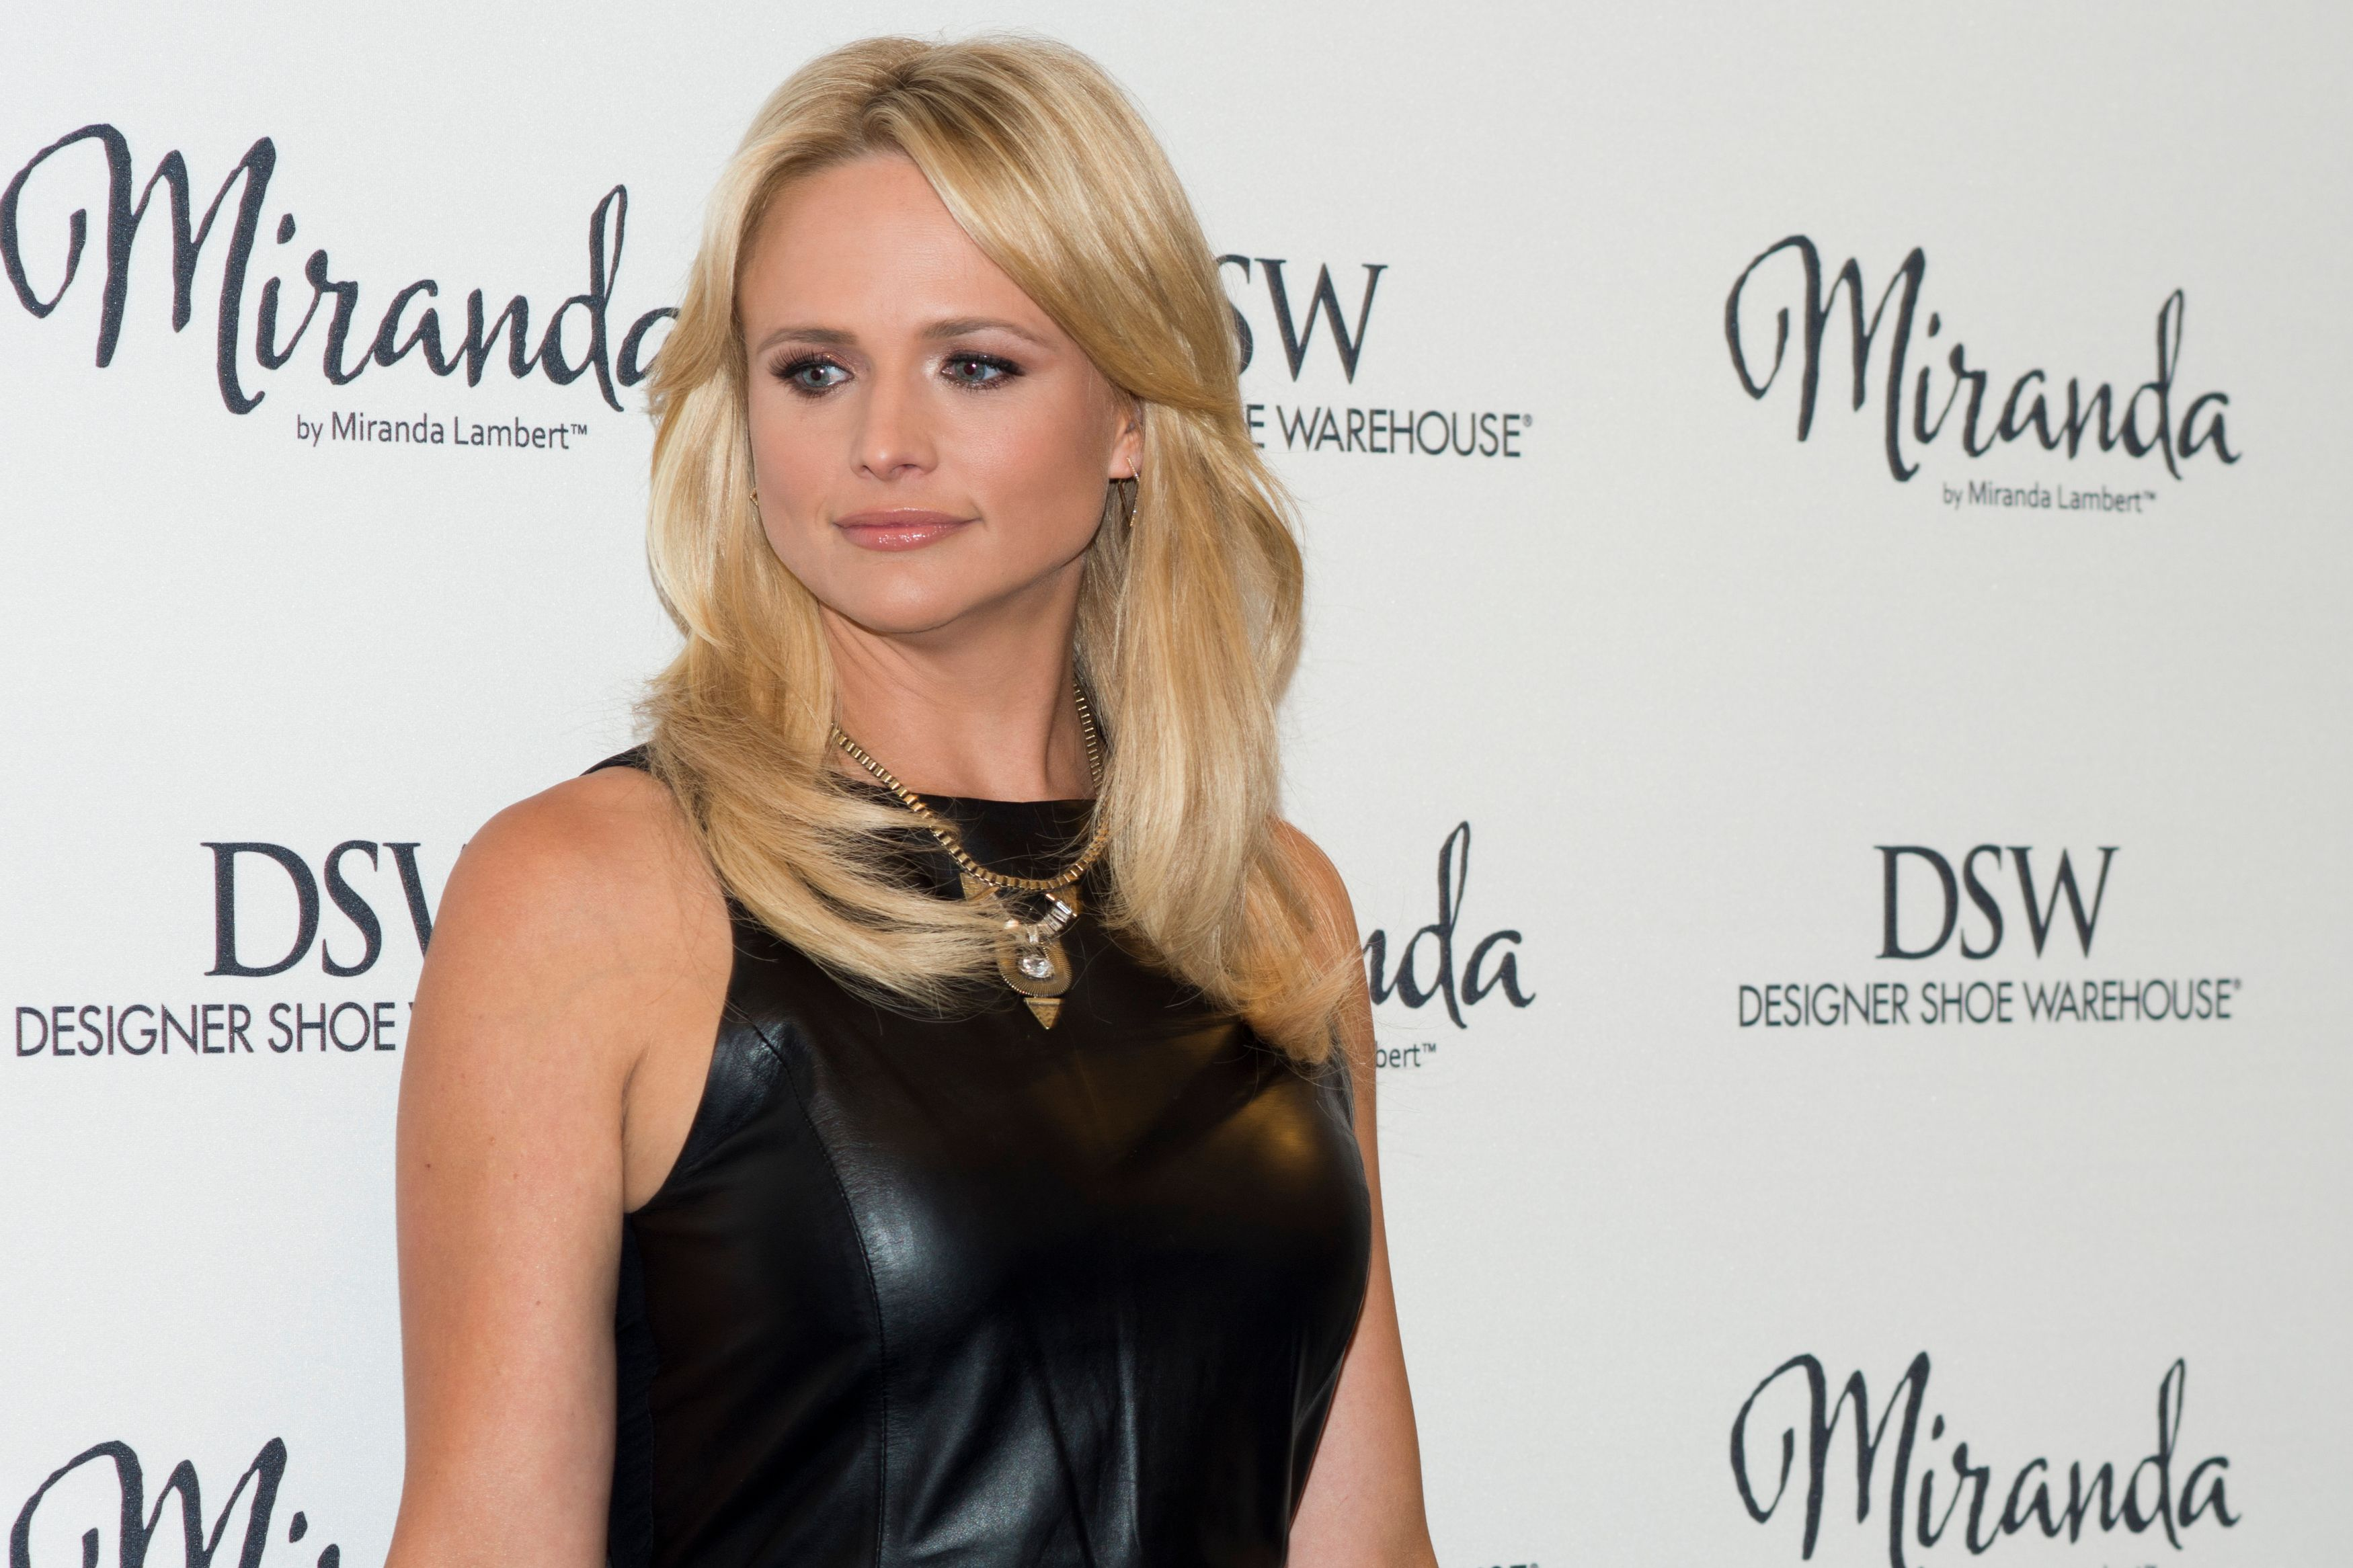 Miranda Lambert poses for a portrait as she promotes her new shoe collection at DSW Designer Shoe Warehouse on April 24, 2014 | Photo: Getty Images